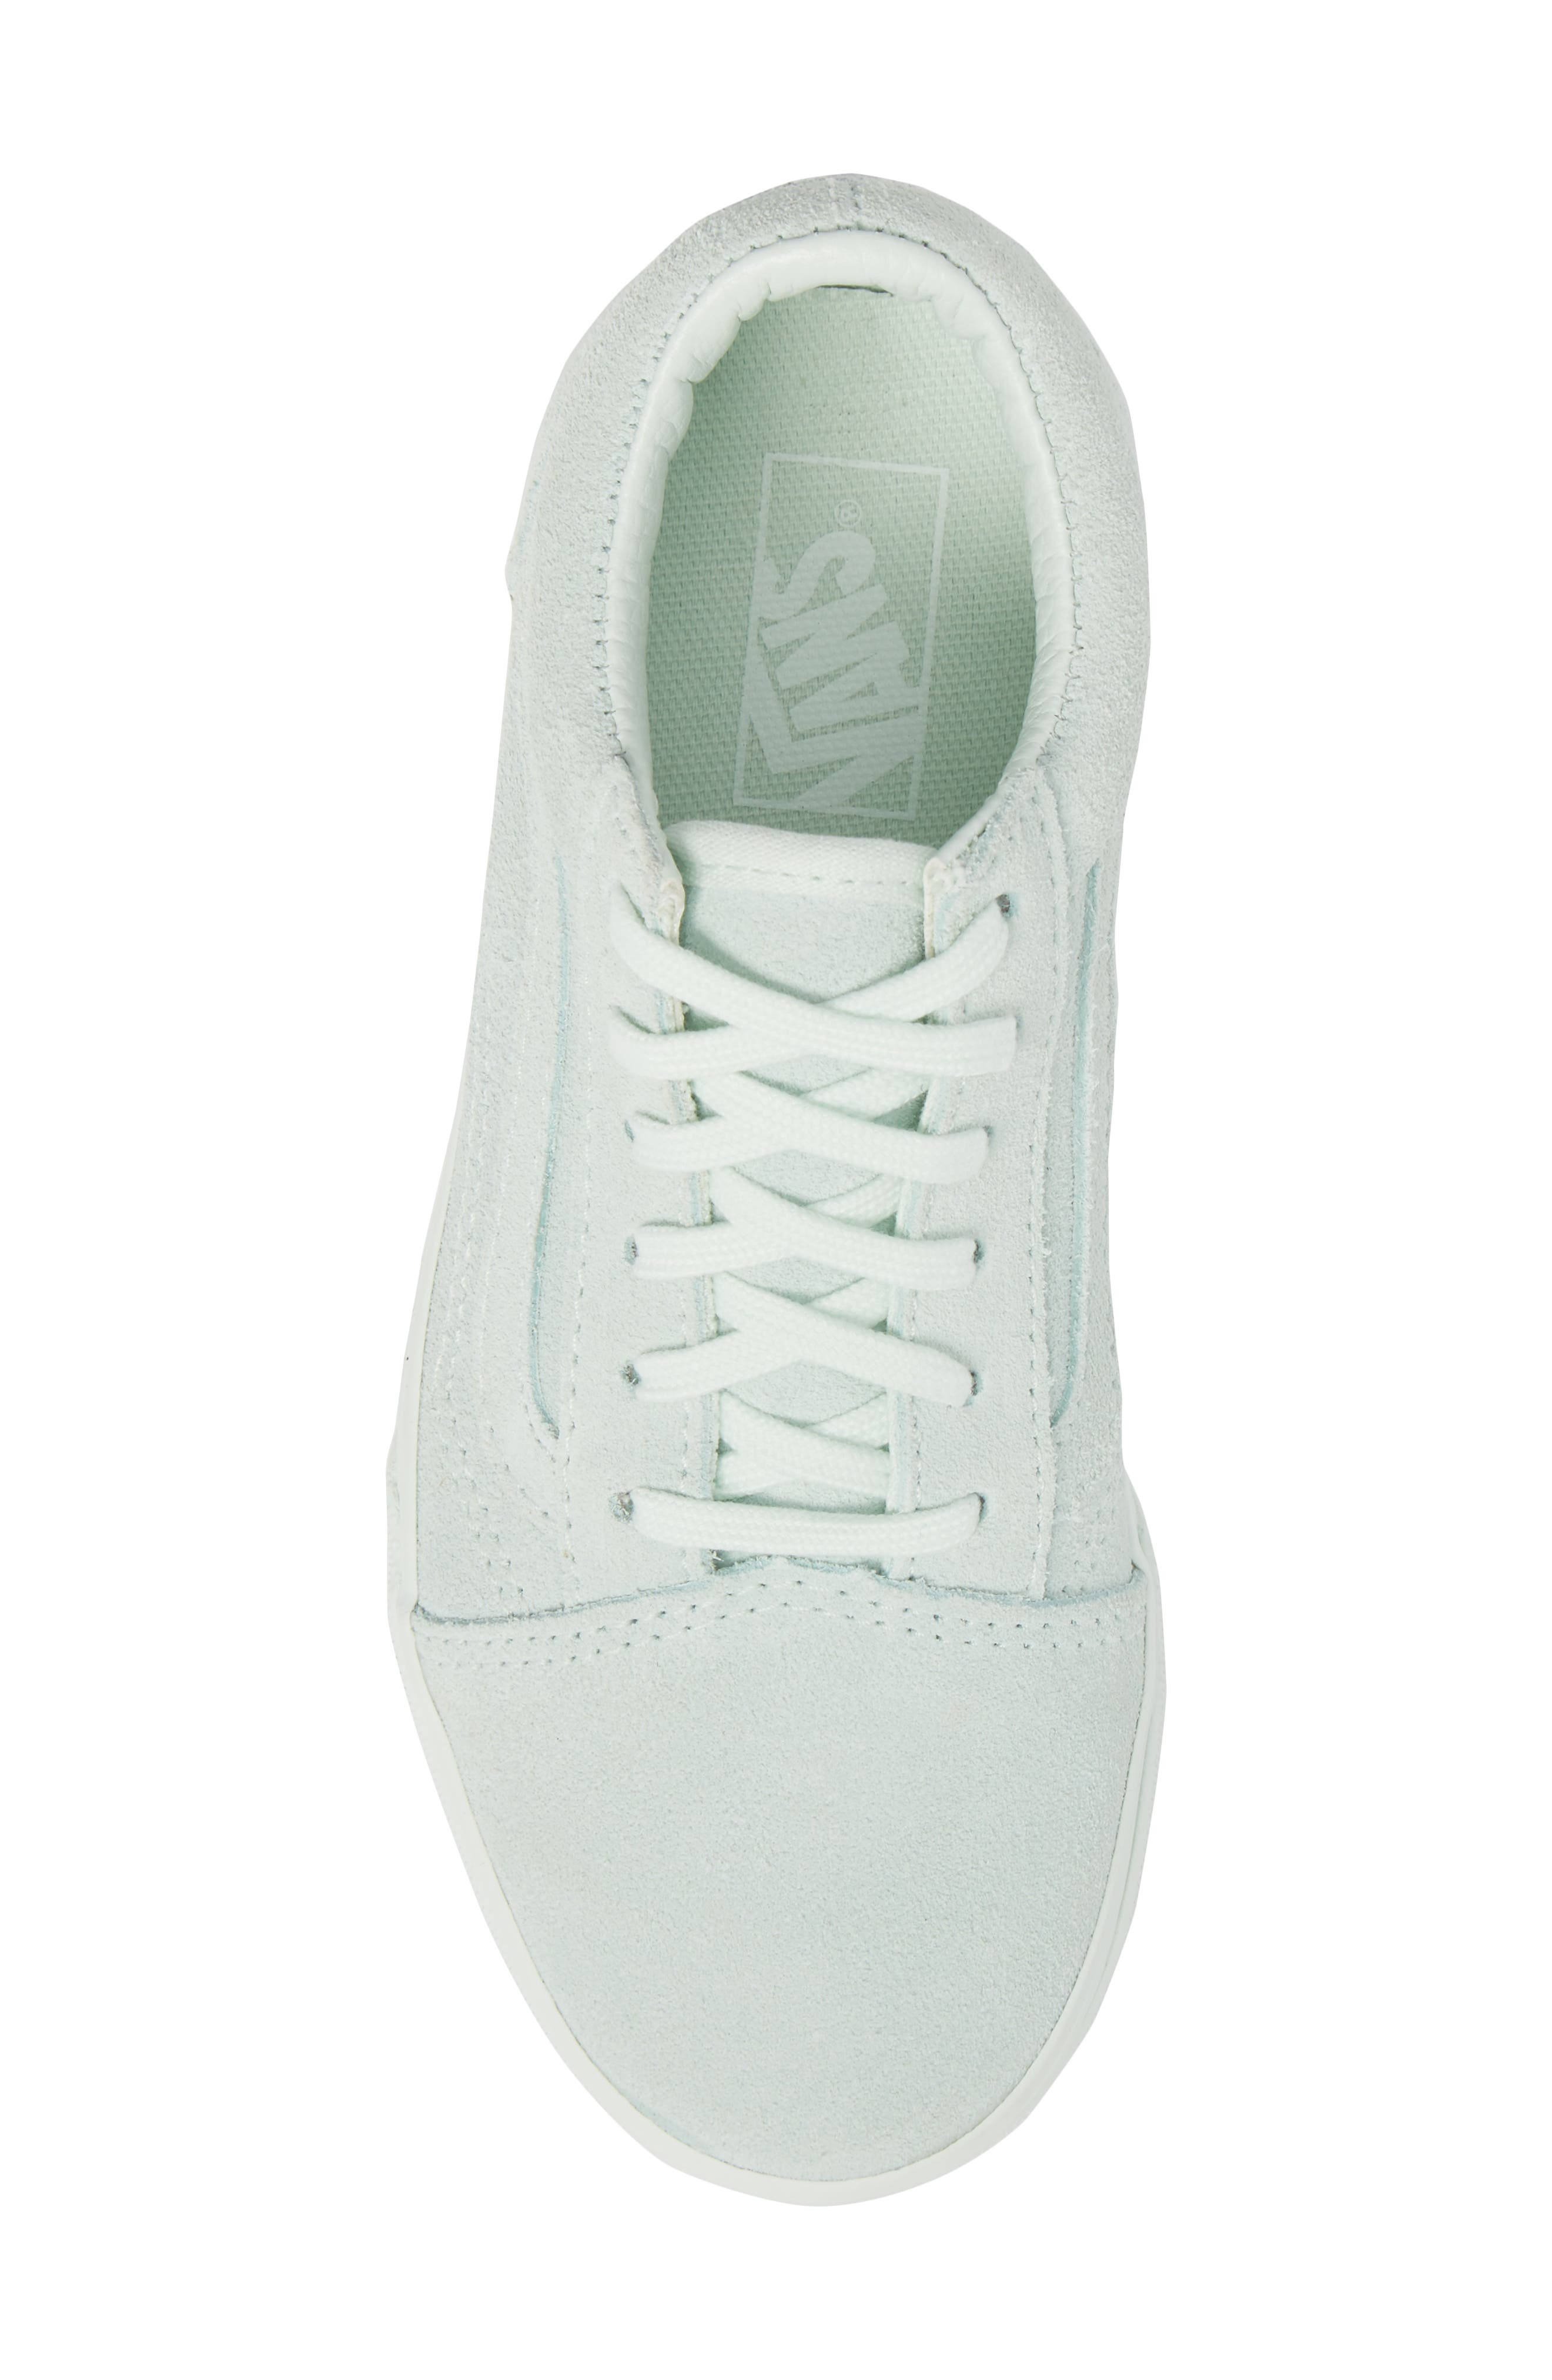 Old Skool Low Top Sneaker,                             Alternate thumbnail 5, color,                             Suede Mono/ Aqua Glass